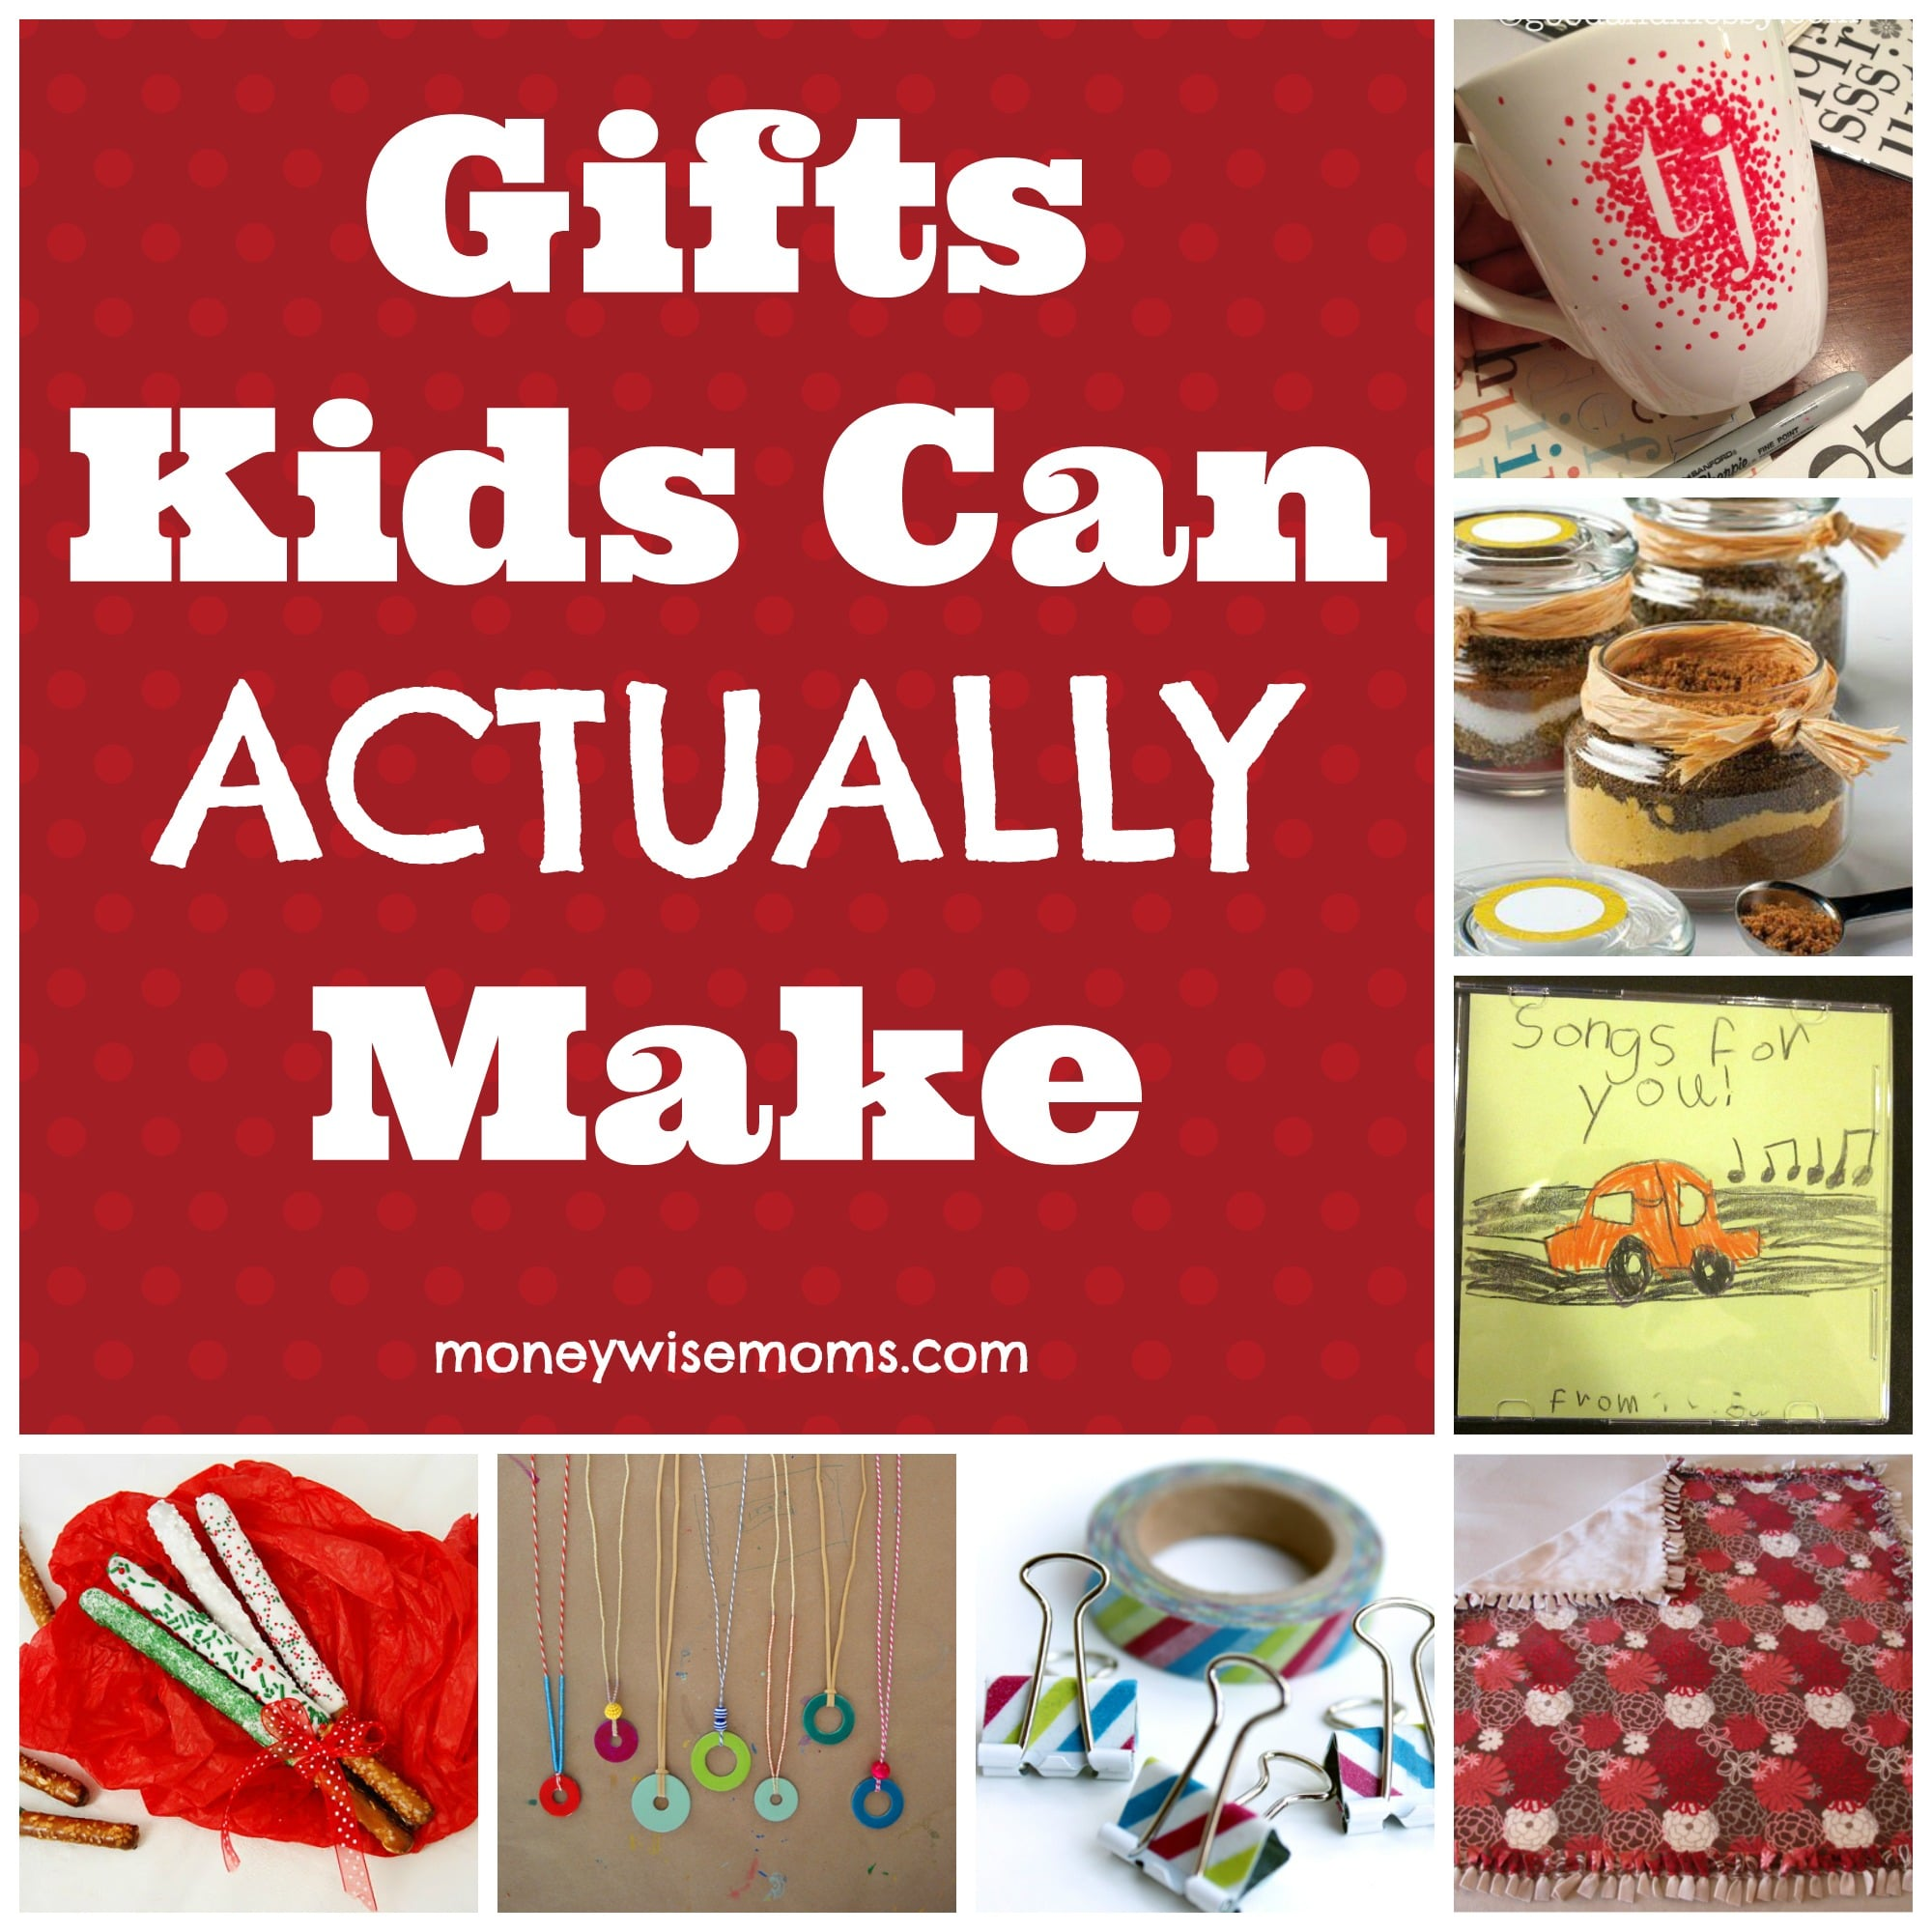 Handmade Christmas Gifts For Kids: Gifts Kids Can Actually Make